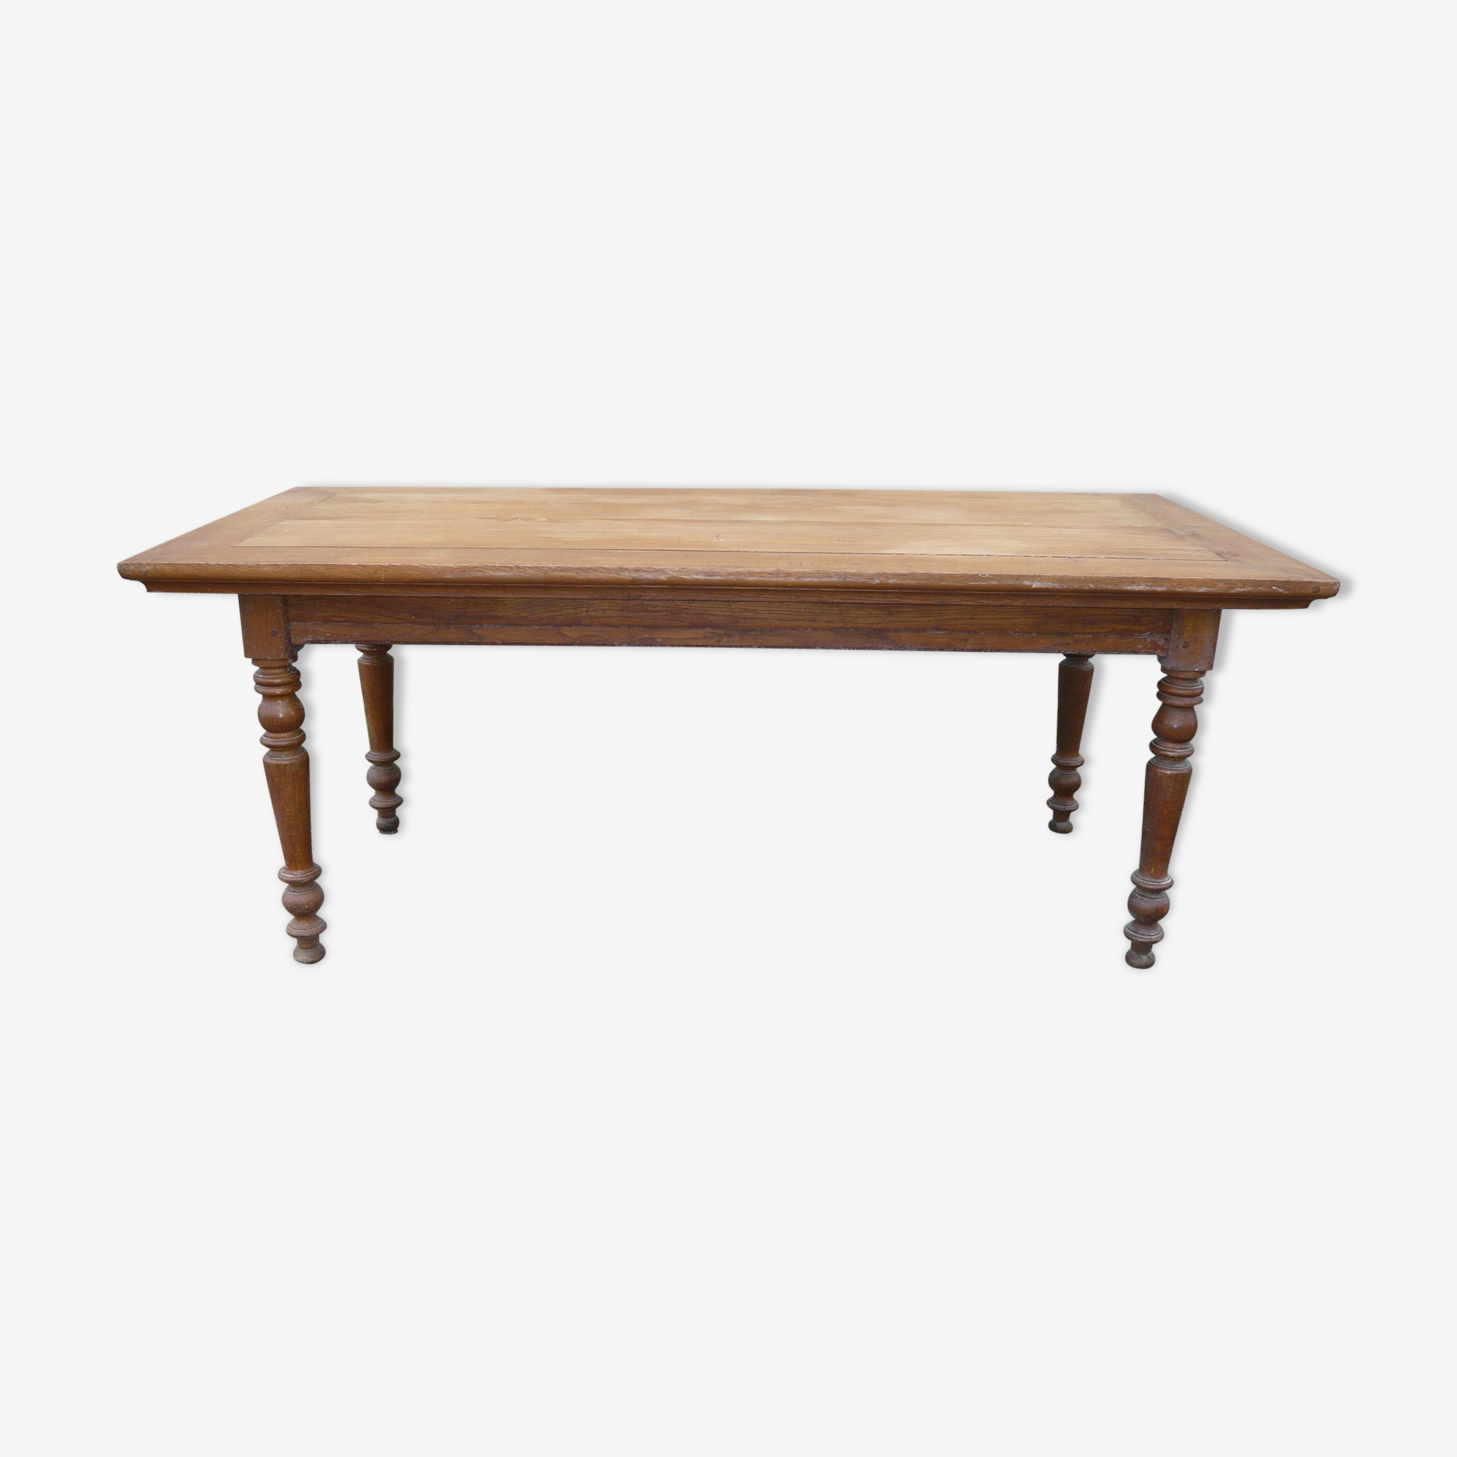 Old craft table